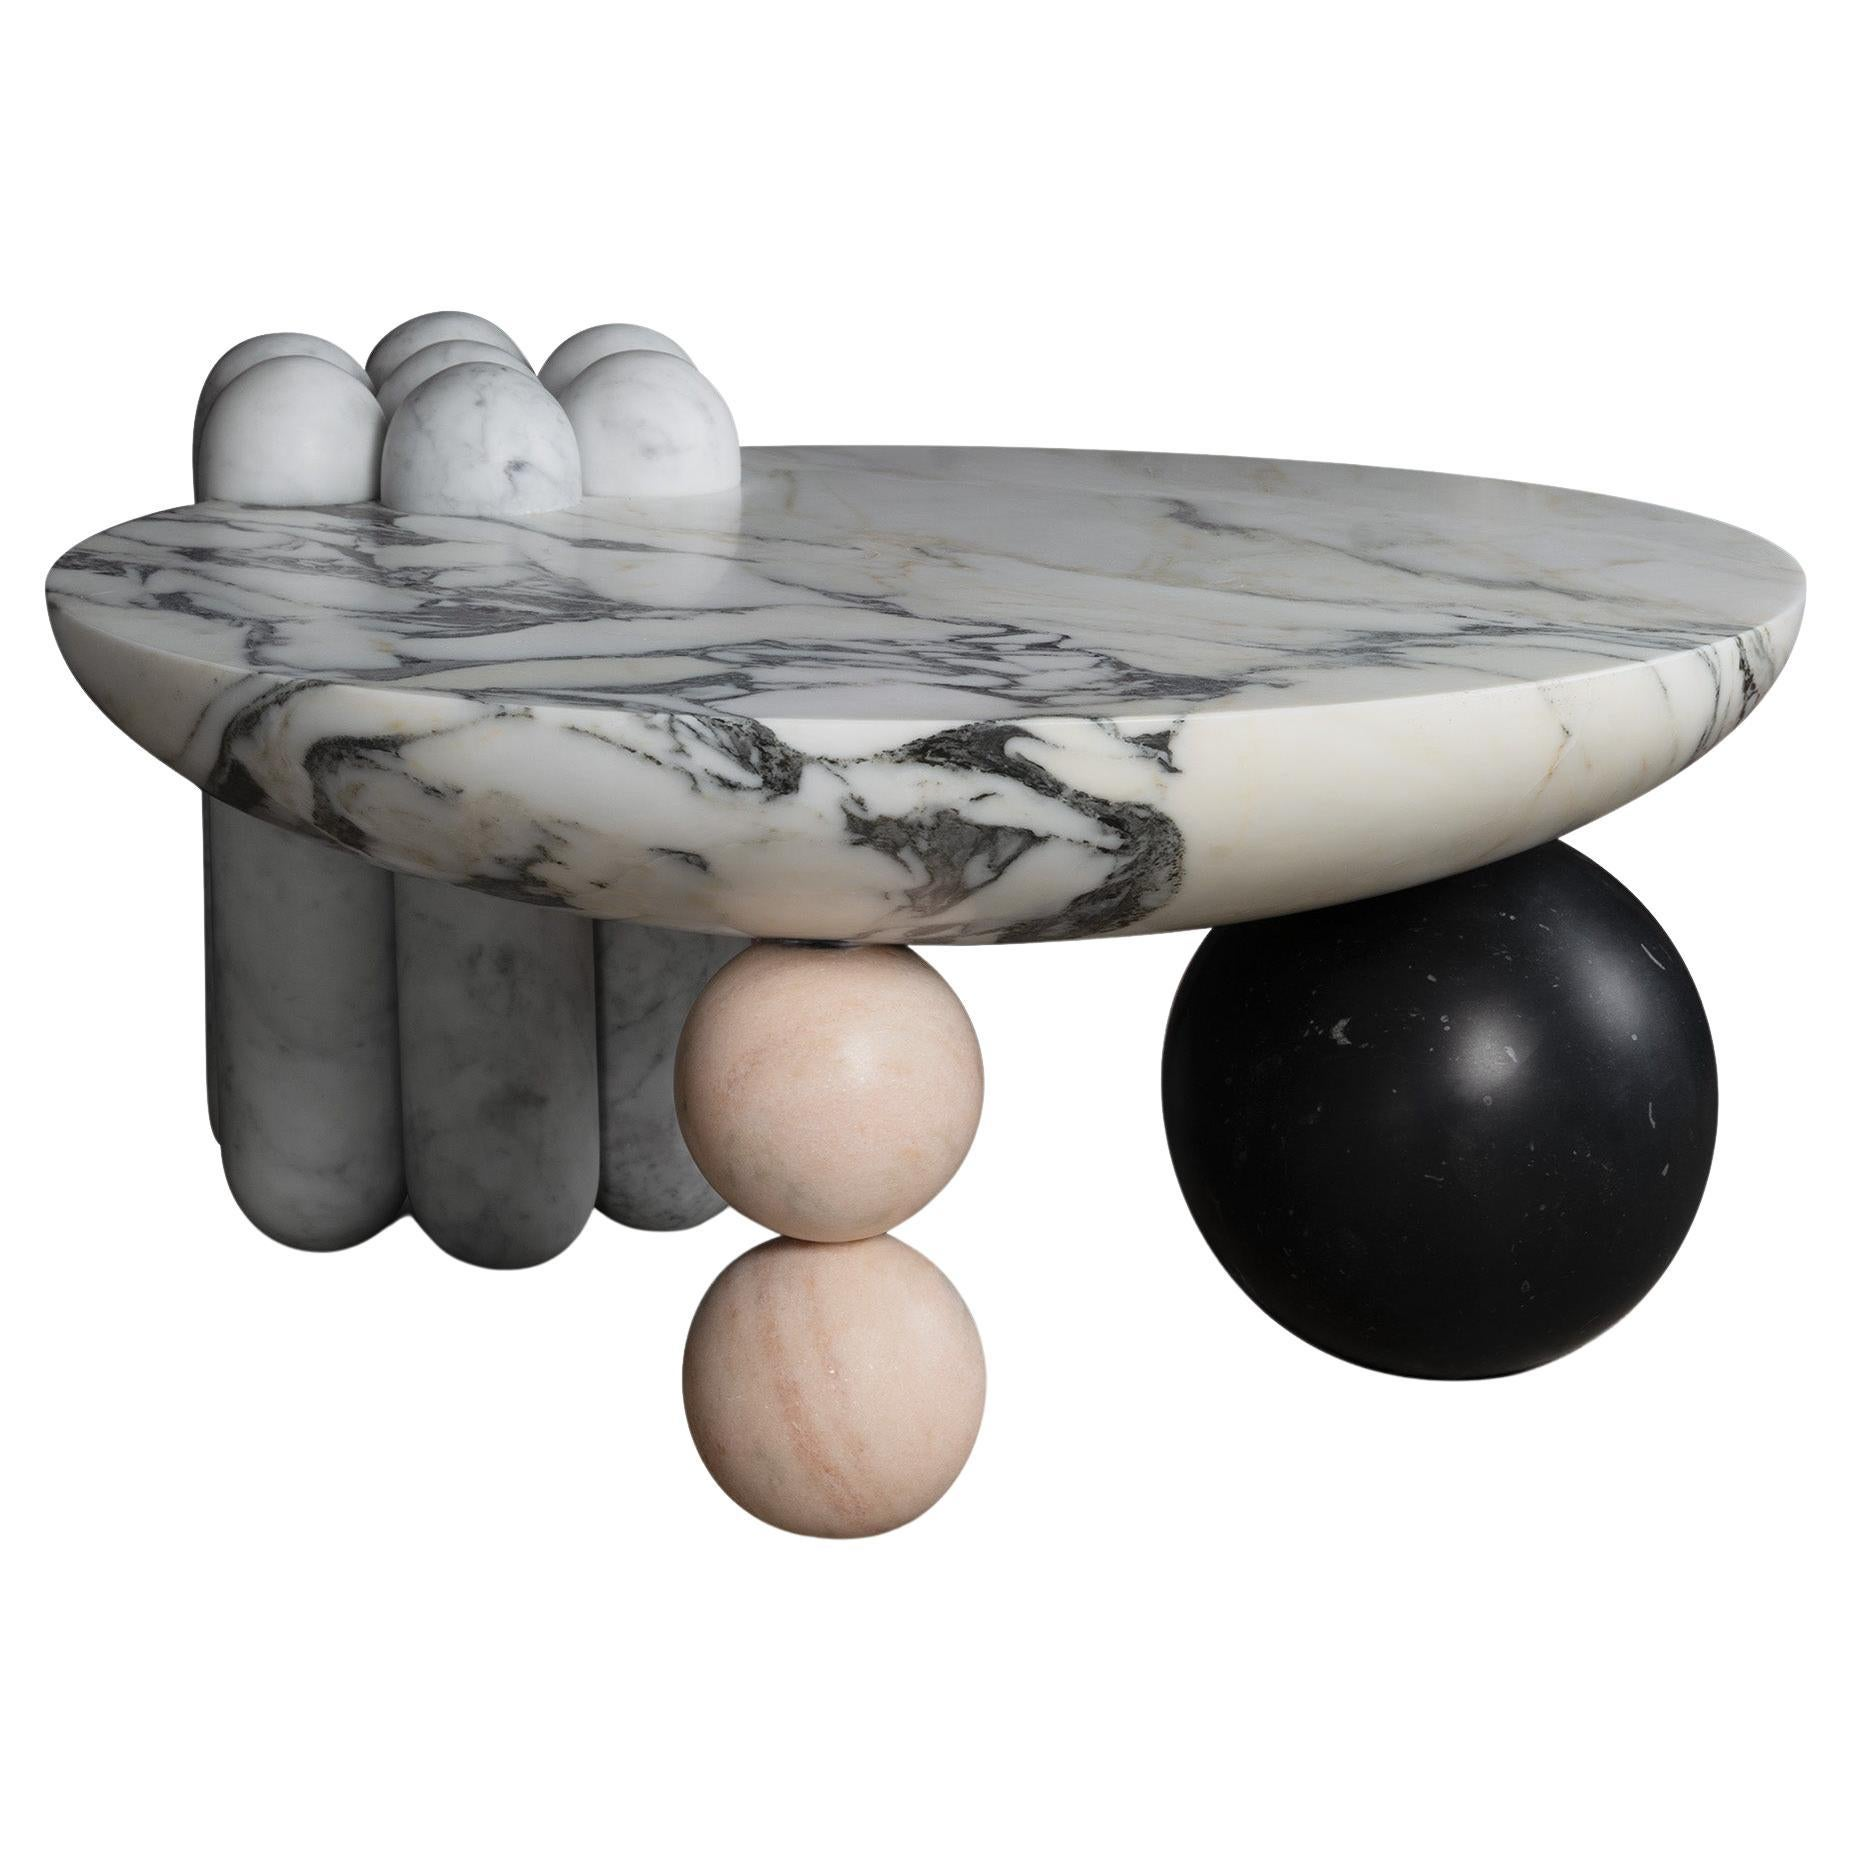 Patisserie Coffee Table by Lara Bohinc in Marble, in Stock